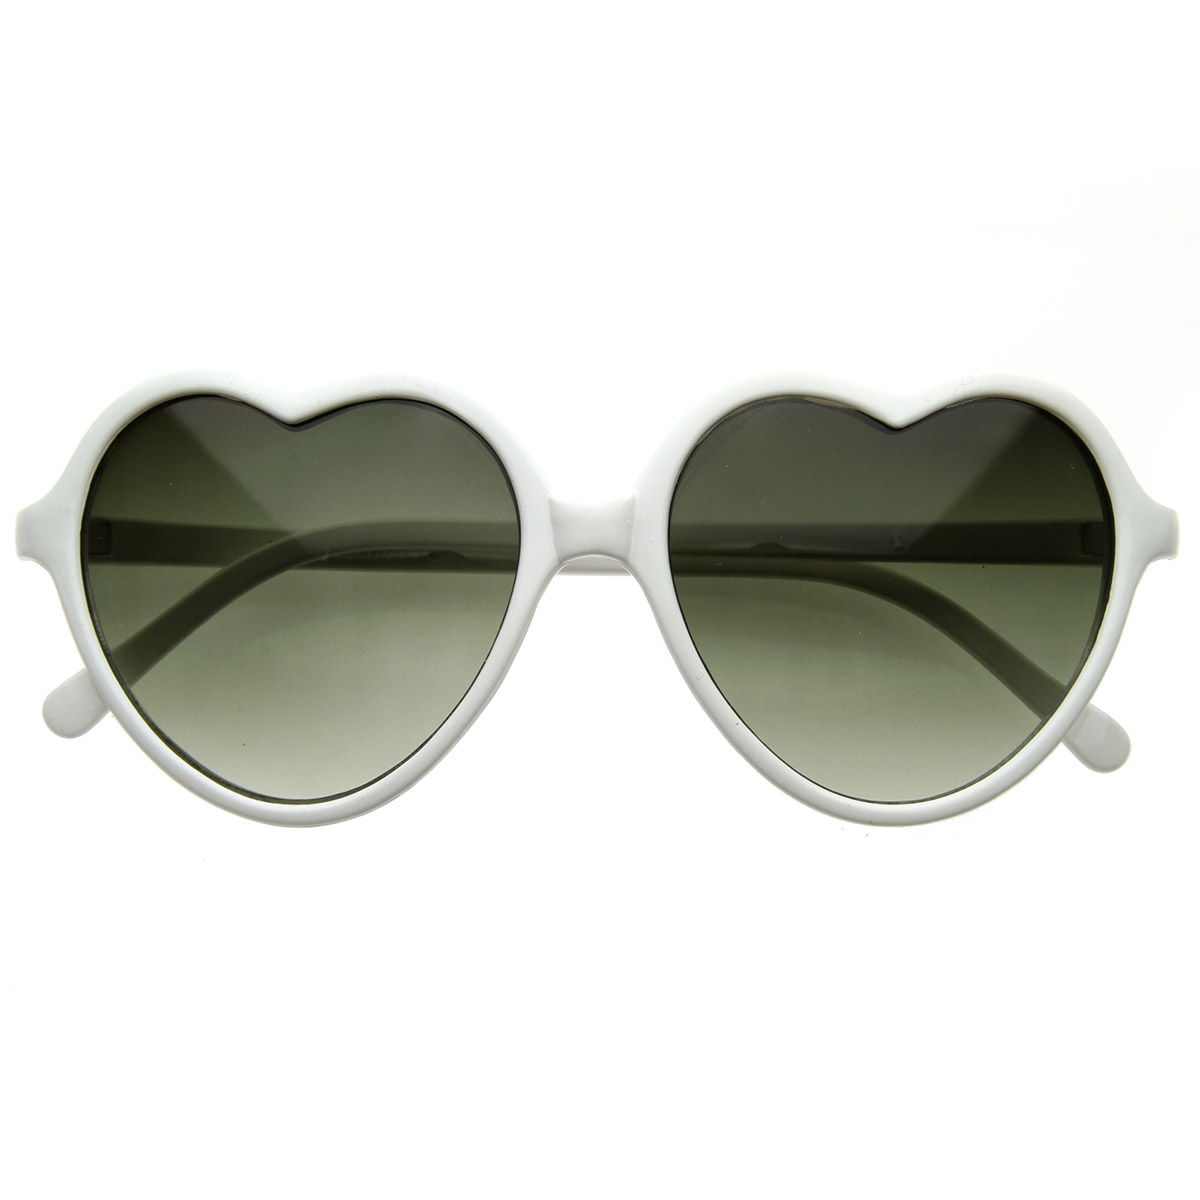 Thin Framed Fashion Glasses : Large Oversized Thin Frame Lovely Heart Shaped Womens ...